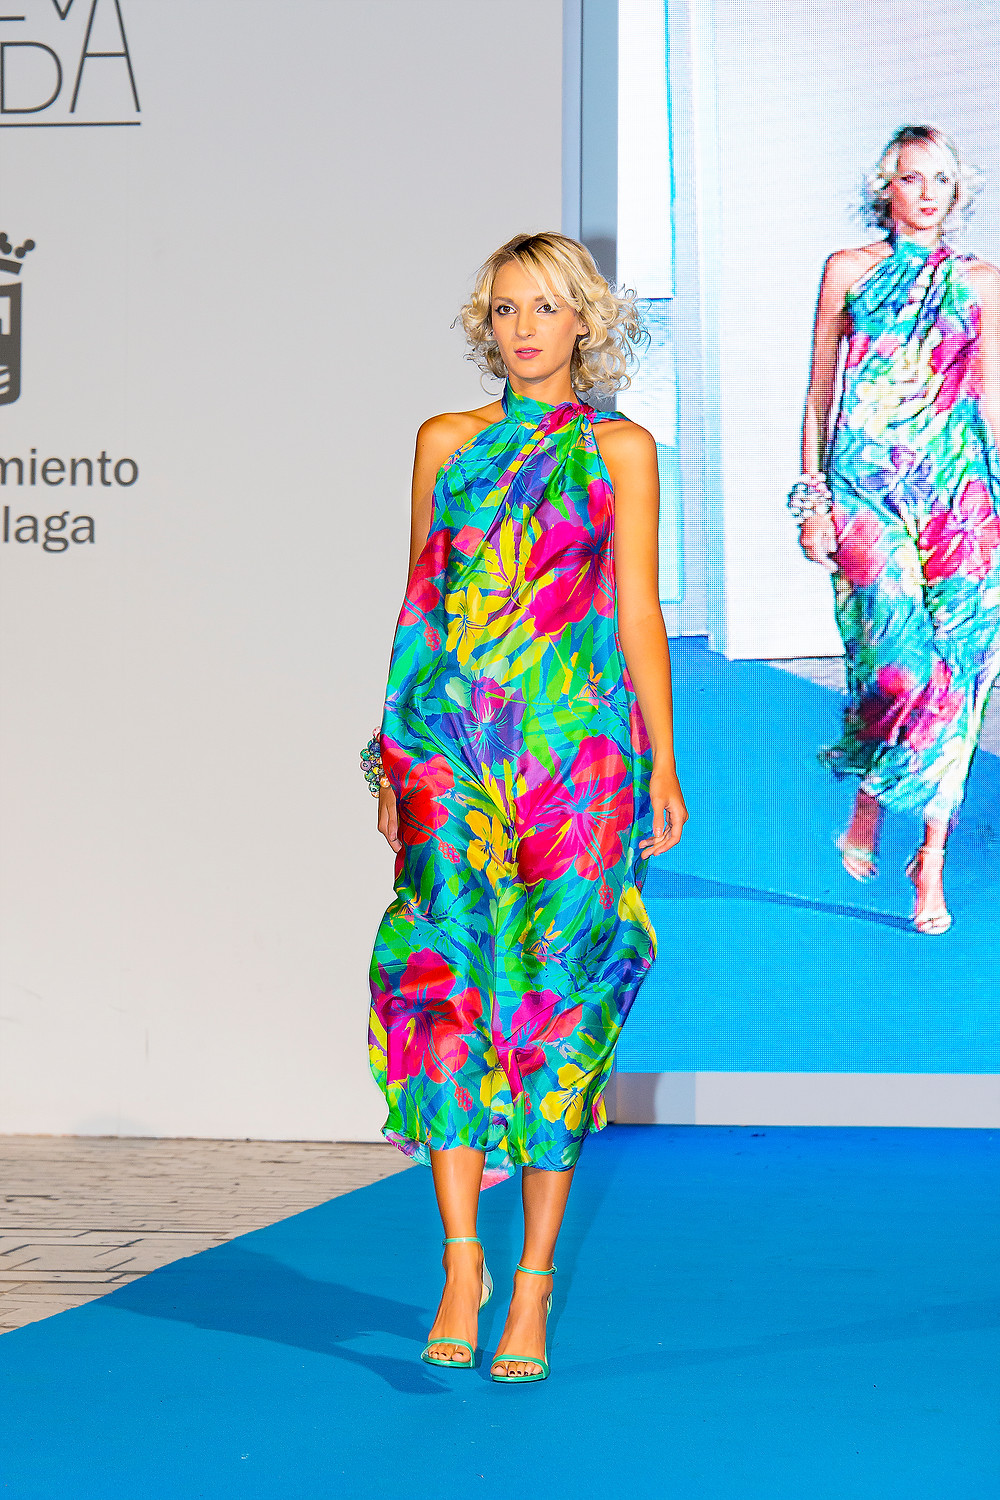 SENA DESIGN at Malaga Fashion Week 2015 Pasarela Larios